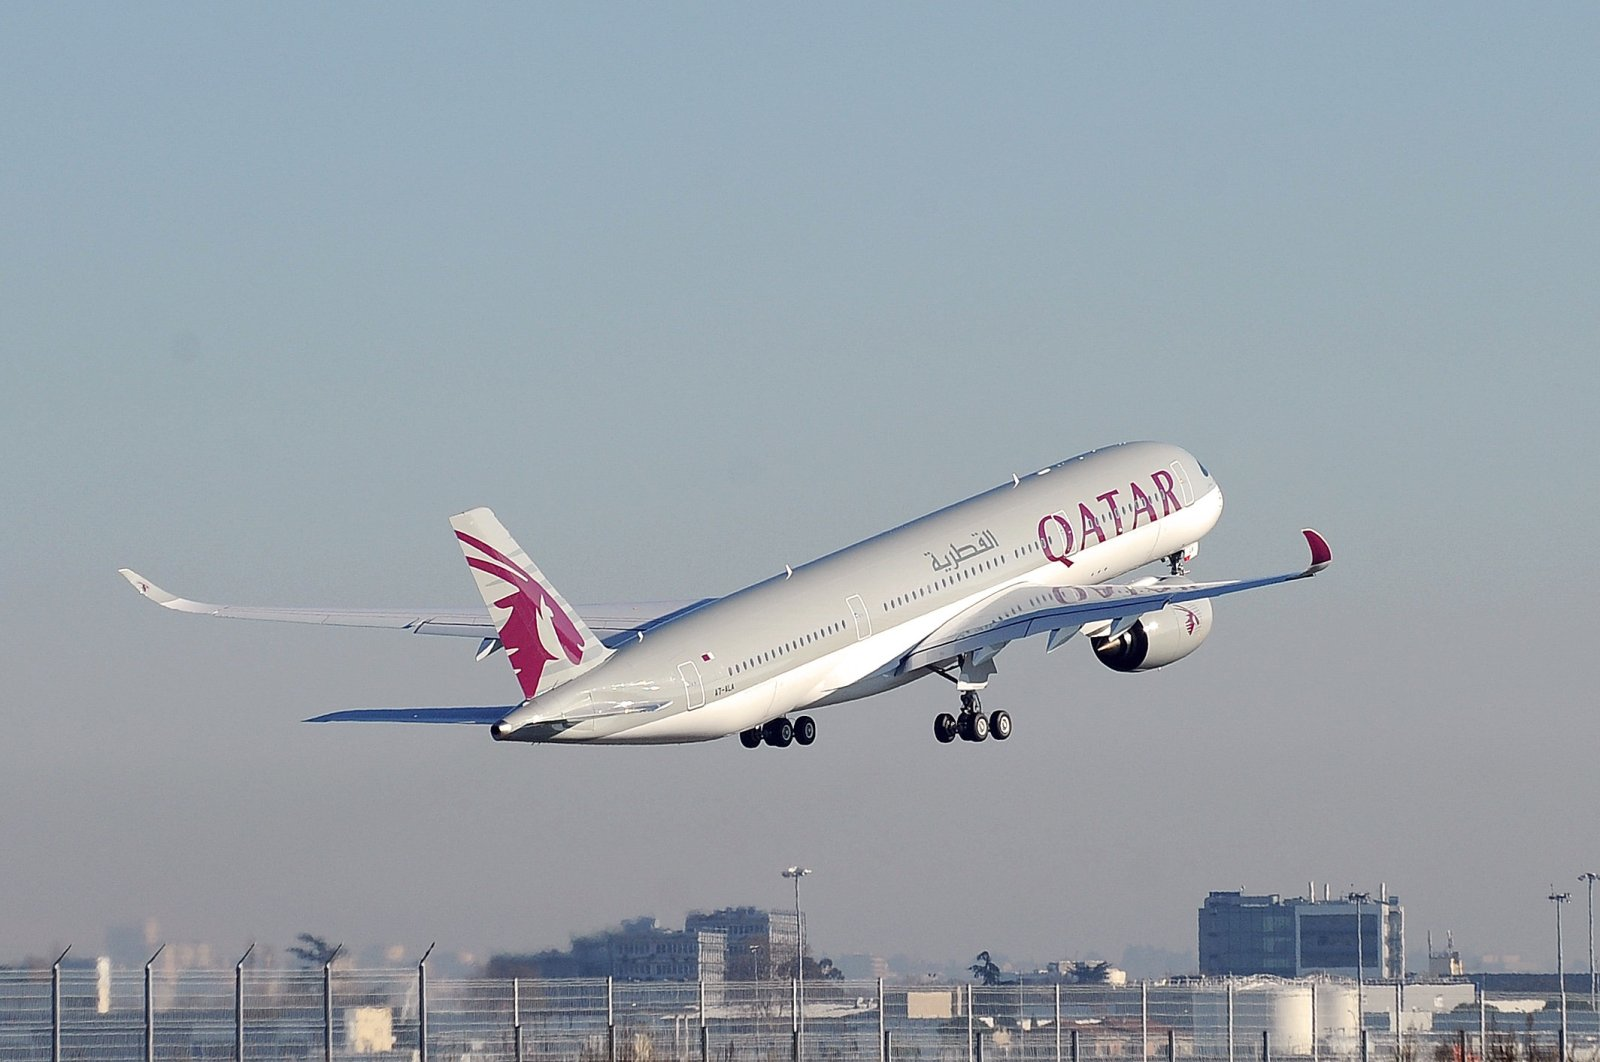 A Qatar Airways A350 takes off from the Airbus headquarters, Toulouse, Dec. 22, 2014. (AFP Photo)